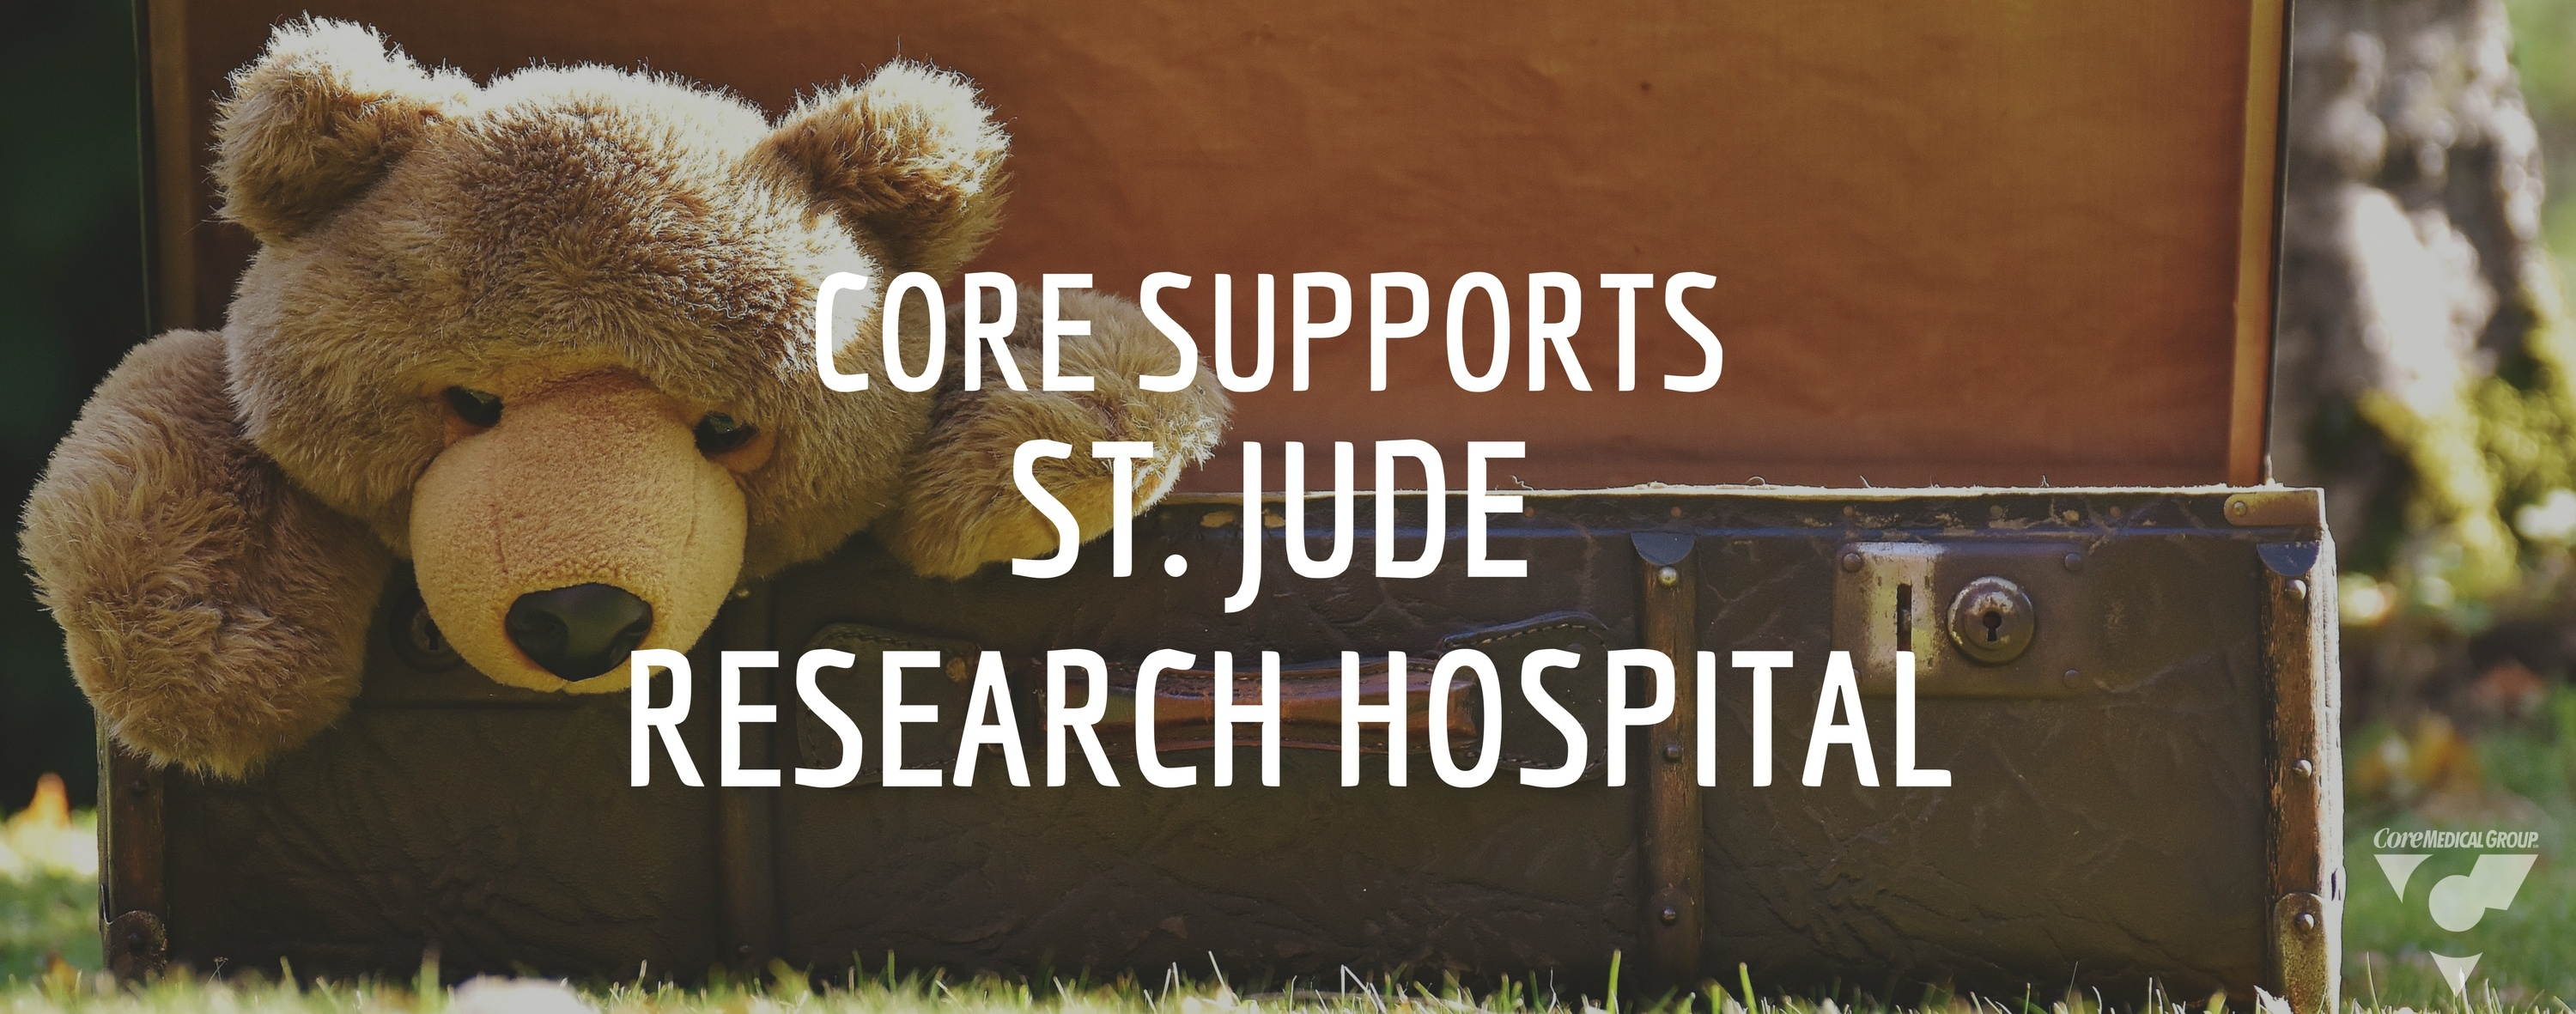 CoreMedical Supports St. Jude Children's Research Hospital